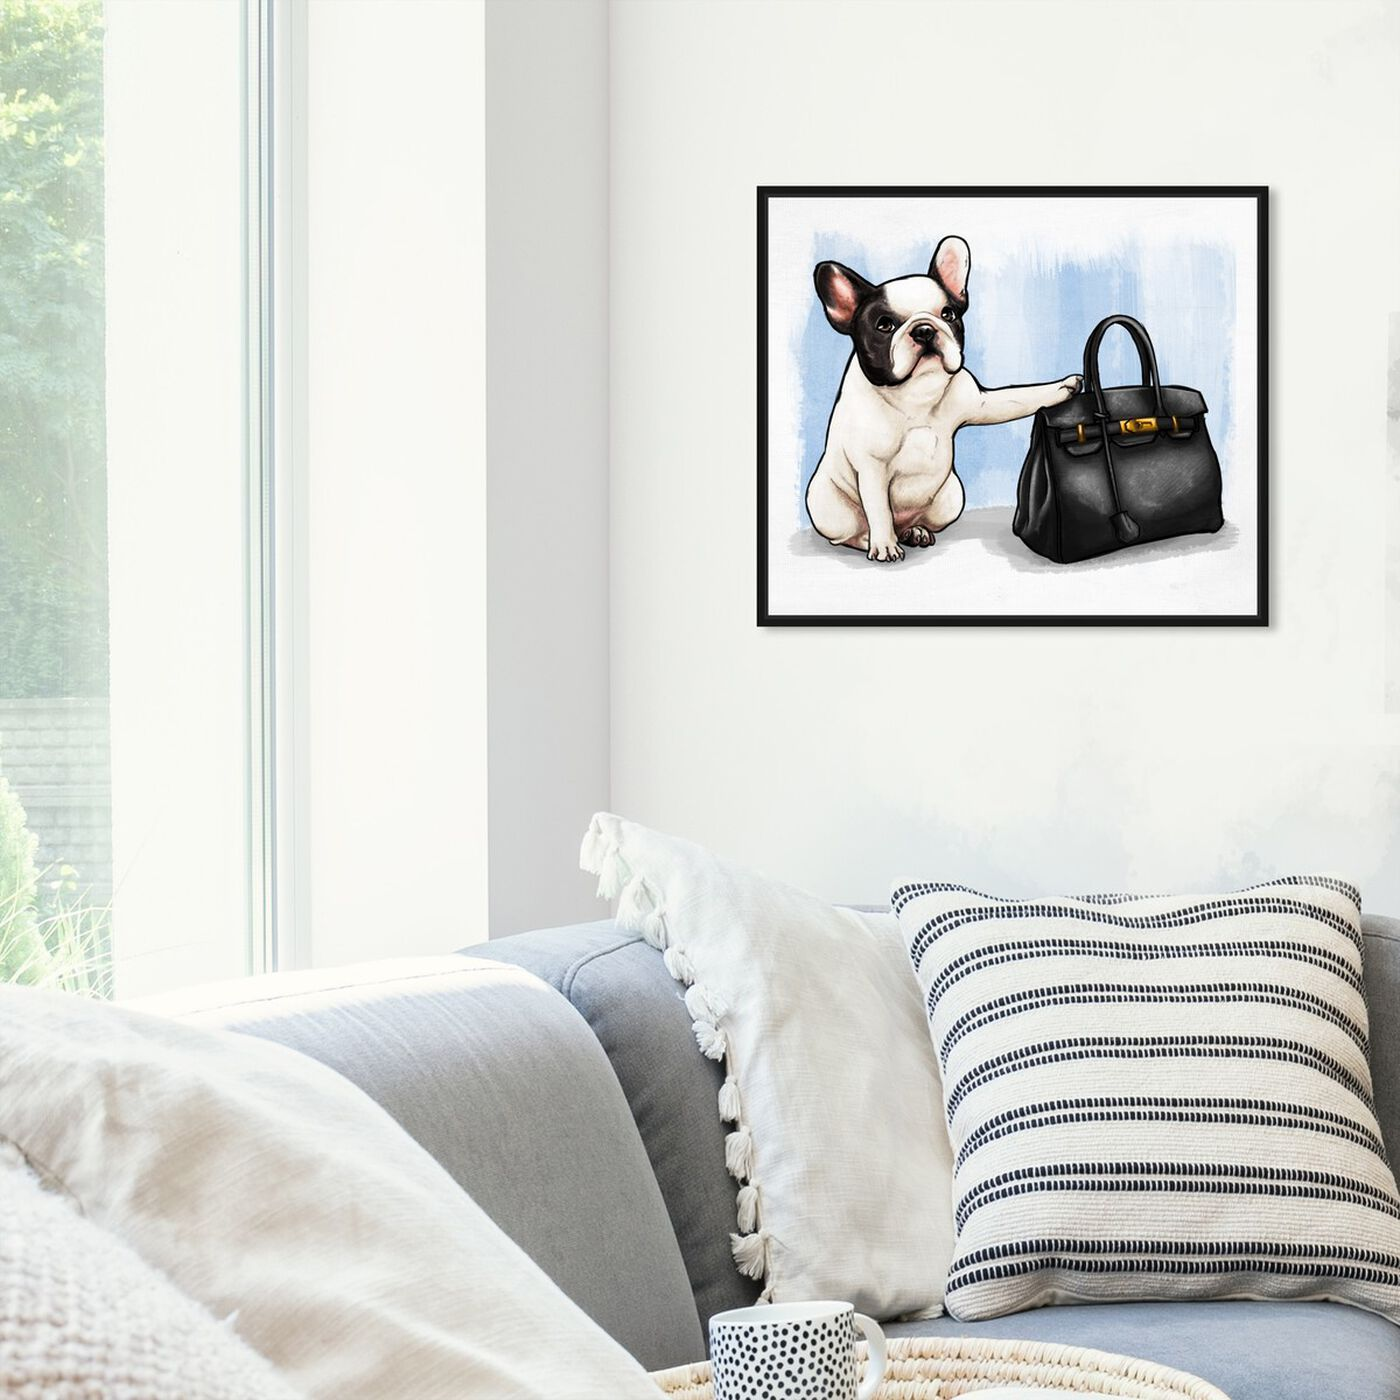 Hanging view of The Clear Choice featuring fashion and glam and handbags art.